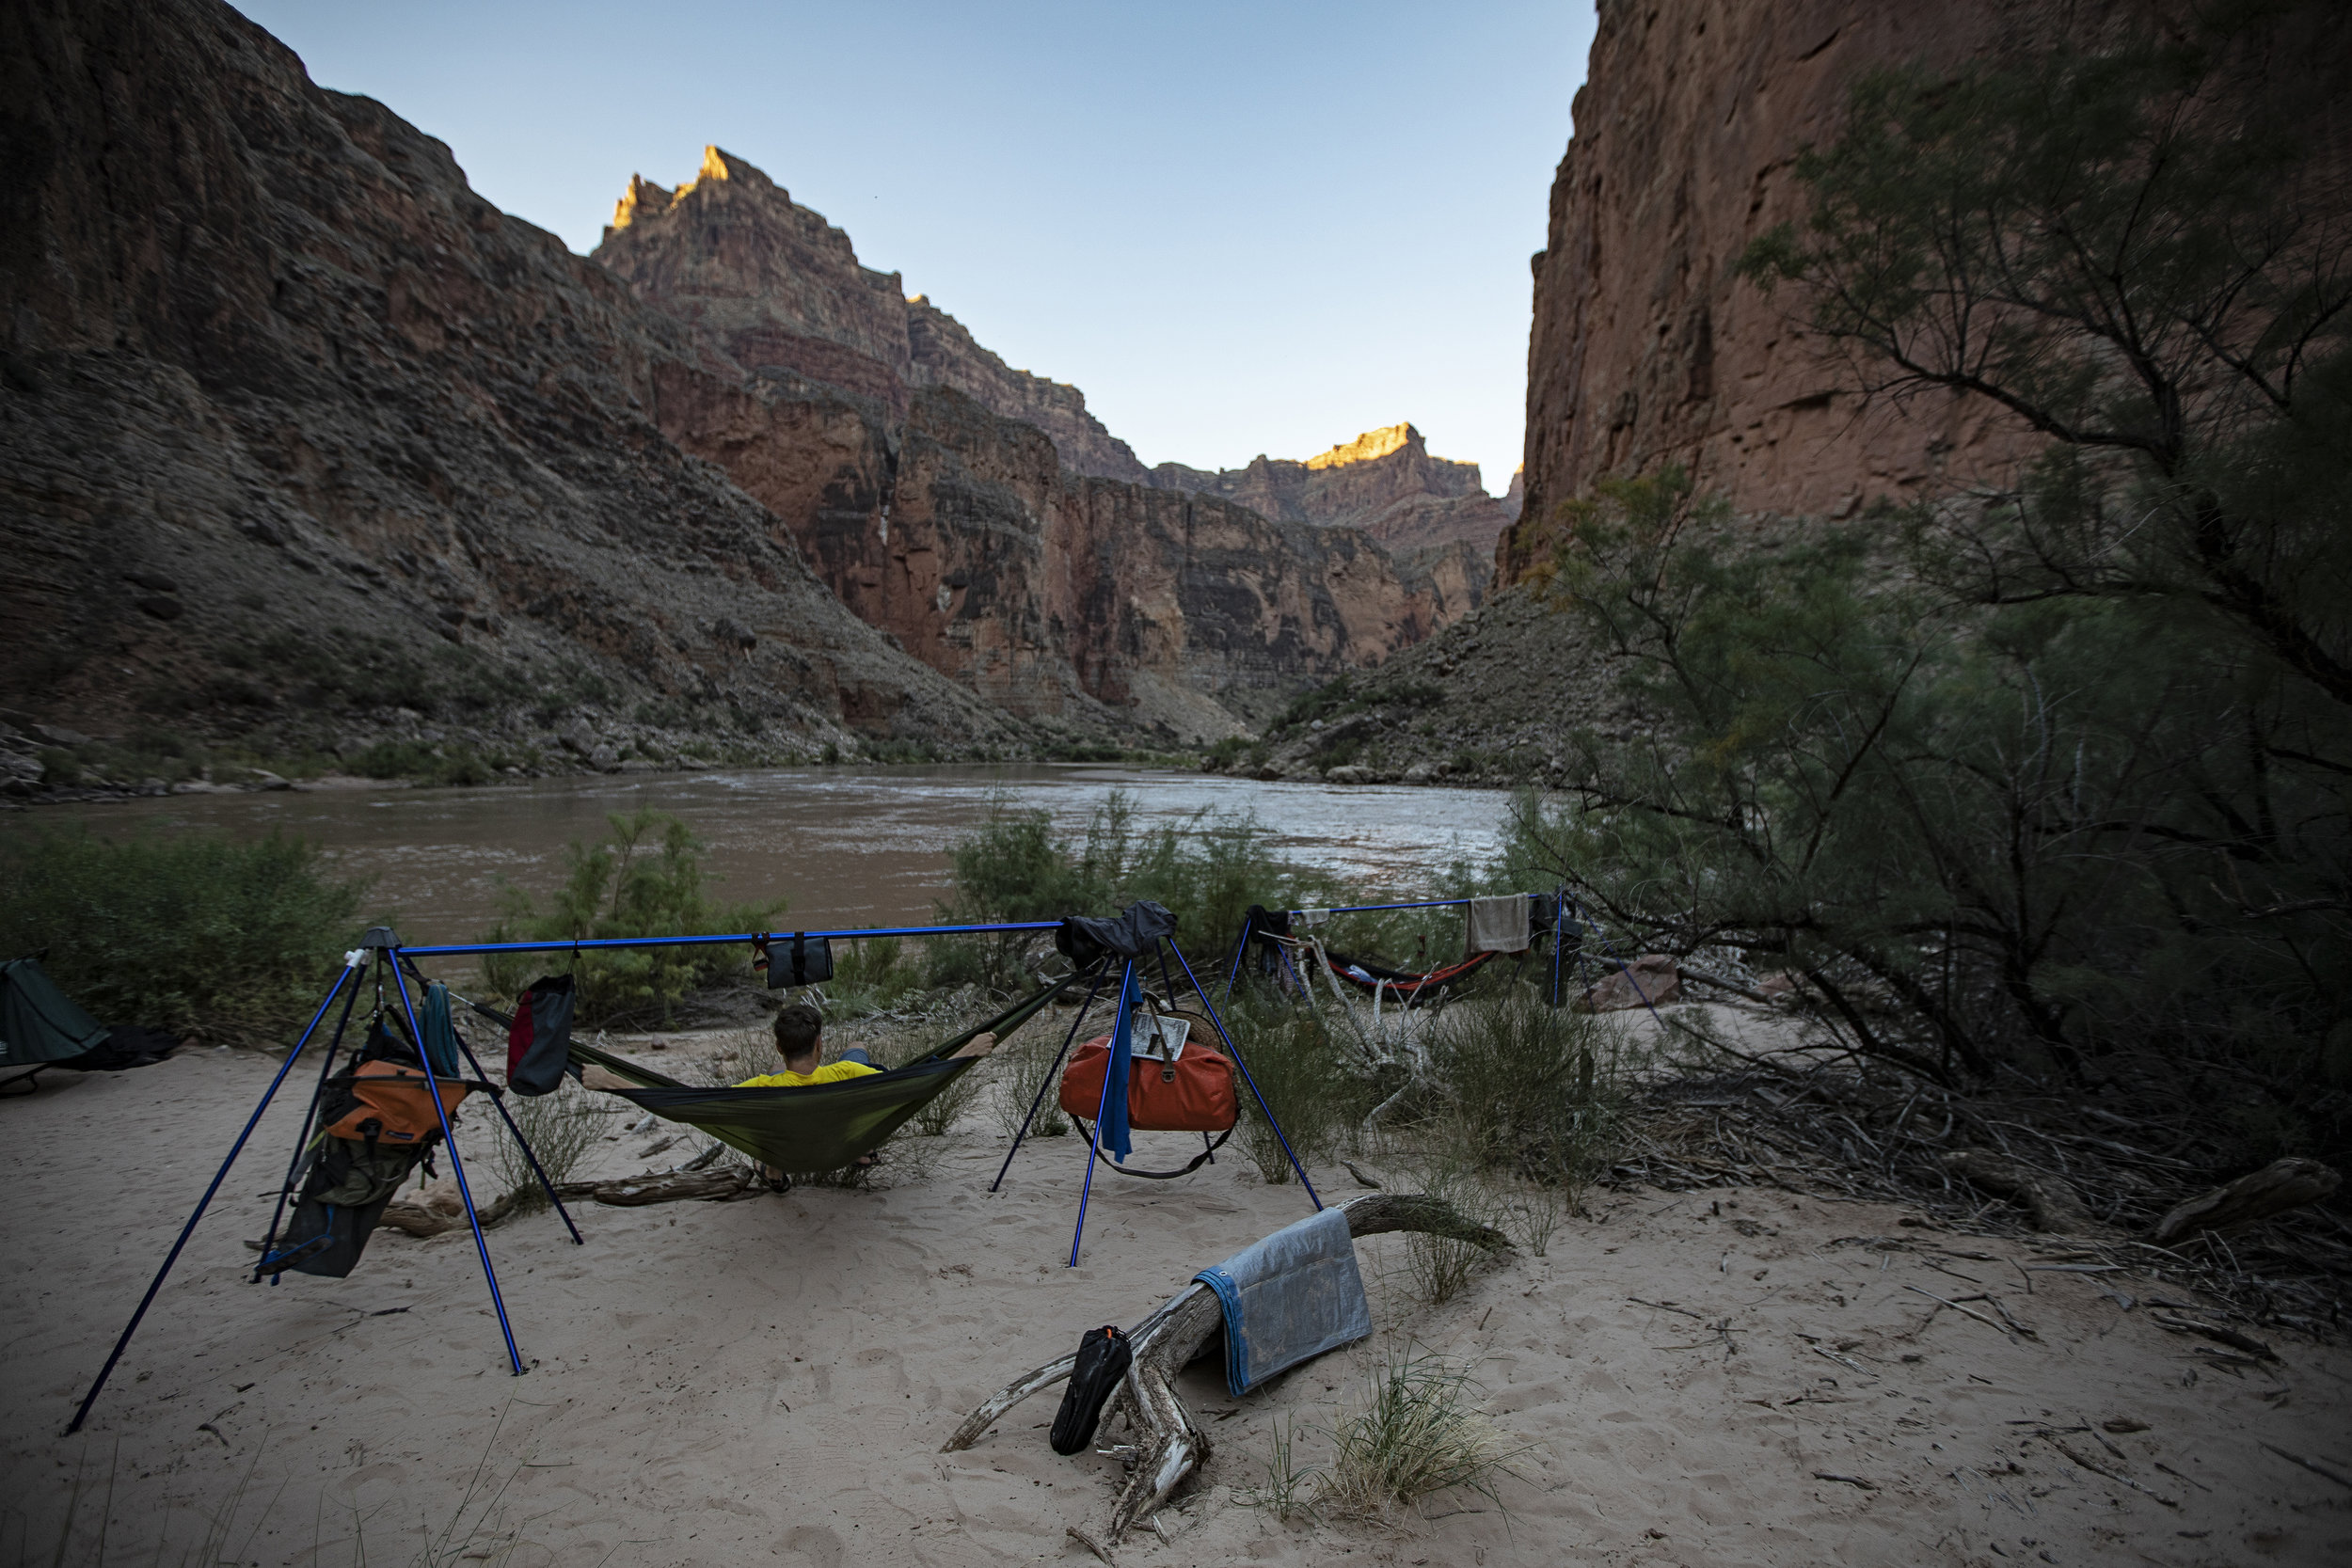 Our hammock set ups for night 3.